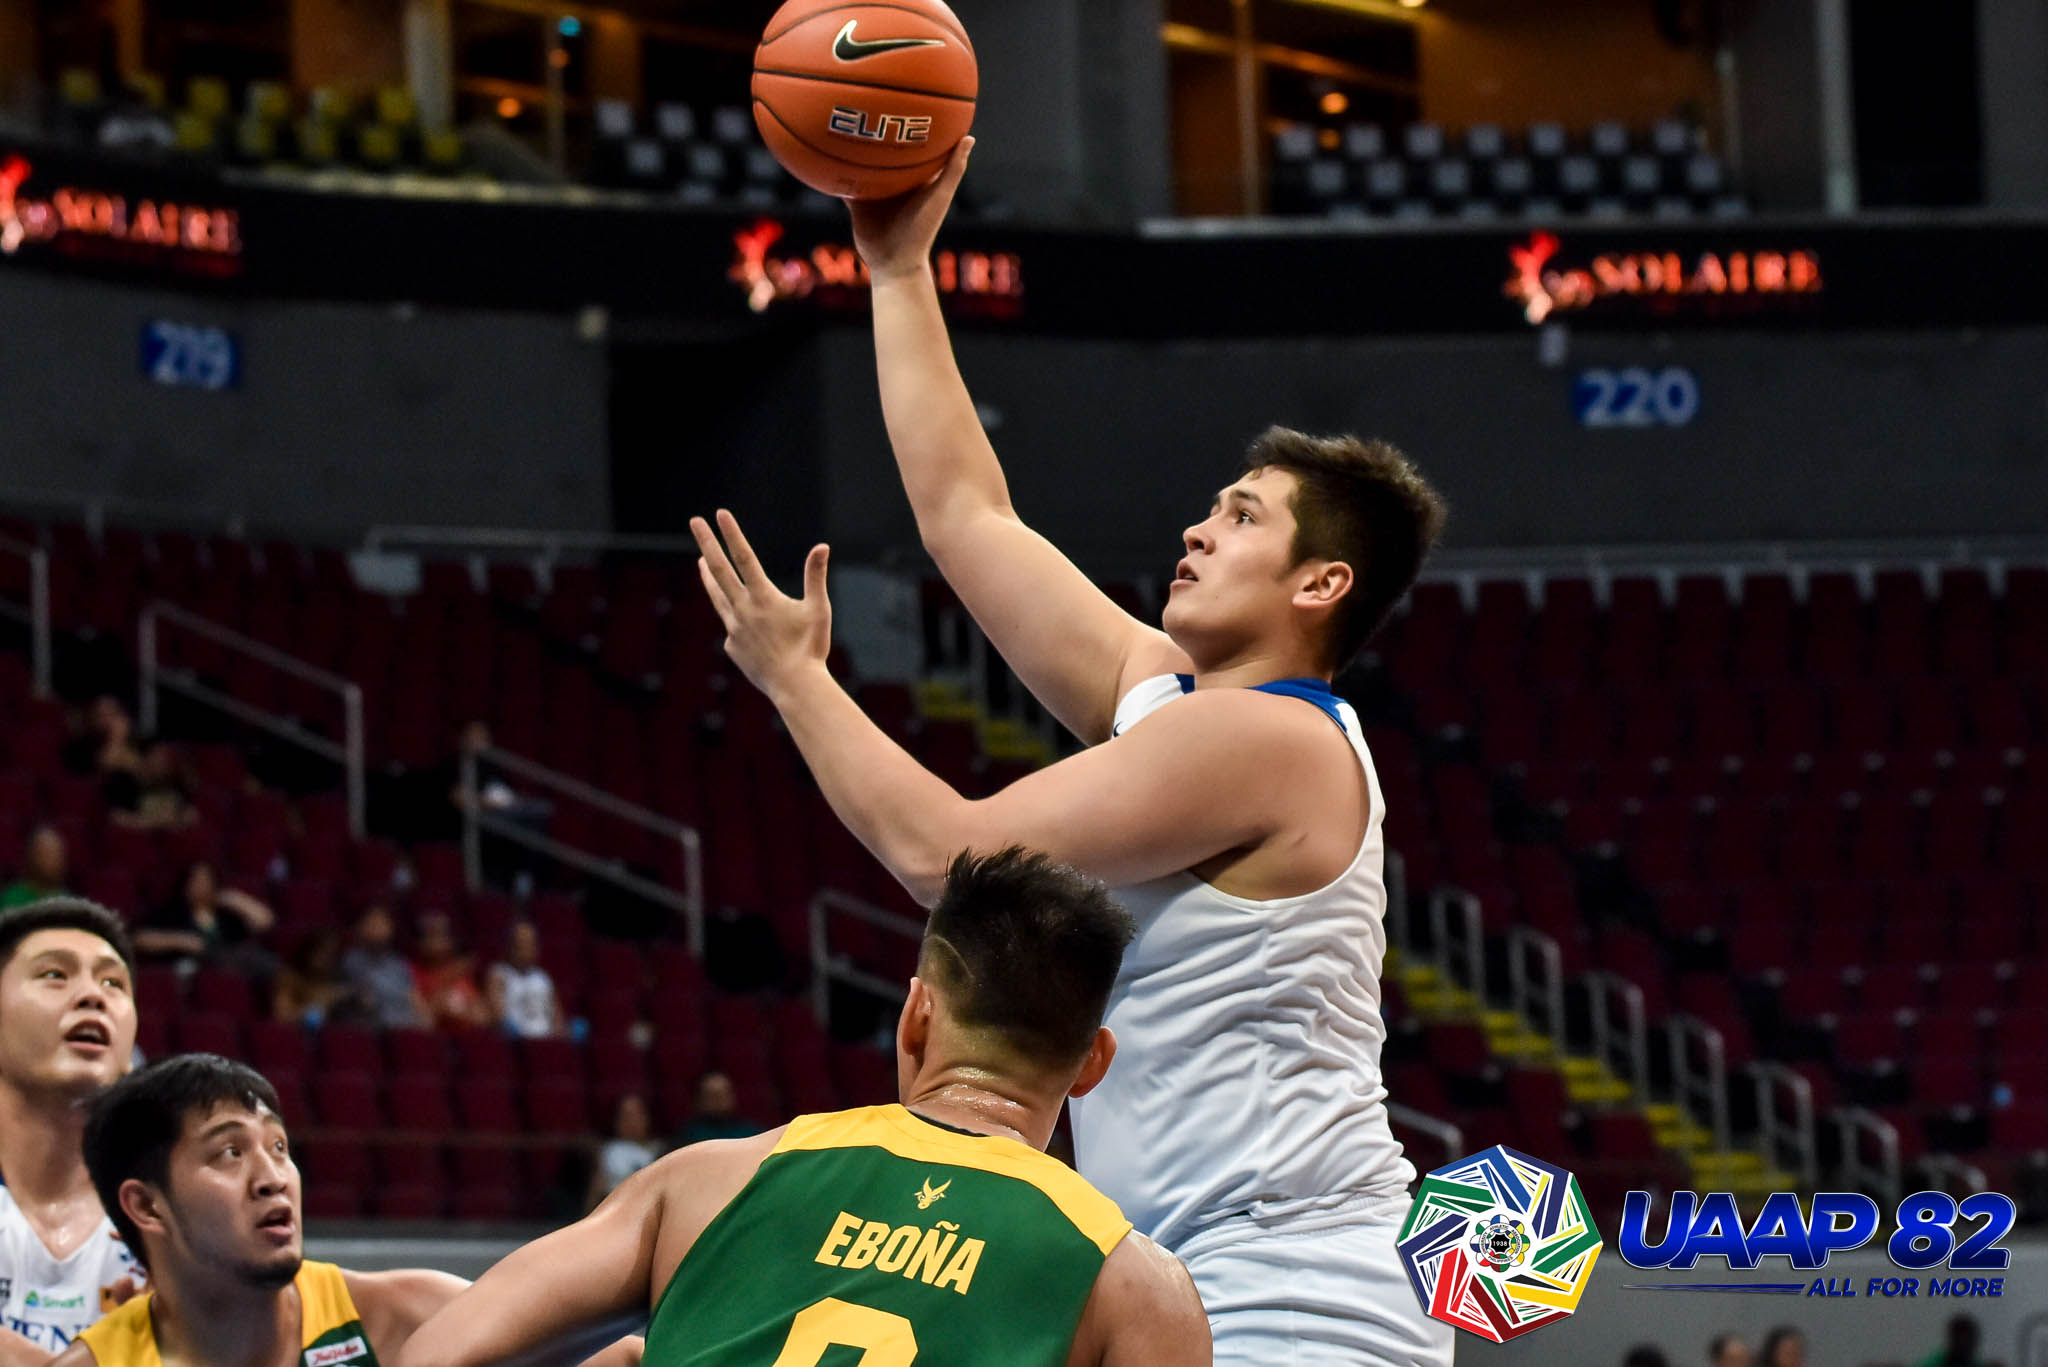 Tiebreaker Times Ateneo survives FEU to go to 11-0, gets wake-up call ADMU Basketball FEU News UAAP  UAAP Season 82 Men's Basketball UAAP Season 82 Thirdy Ravena Tab Baldwin Patrick Maagdenberg Olsen Racela L-Jay Gonzales FEU Men's Basketball Ateneo Men's Basketball Angelo Kouame